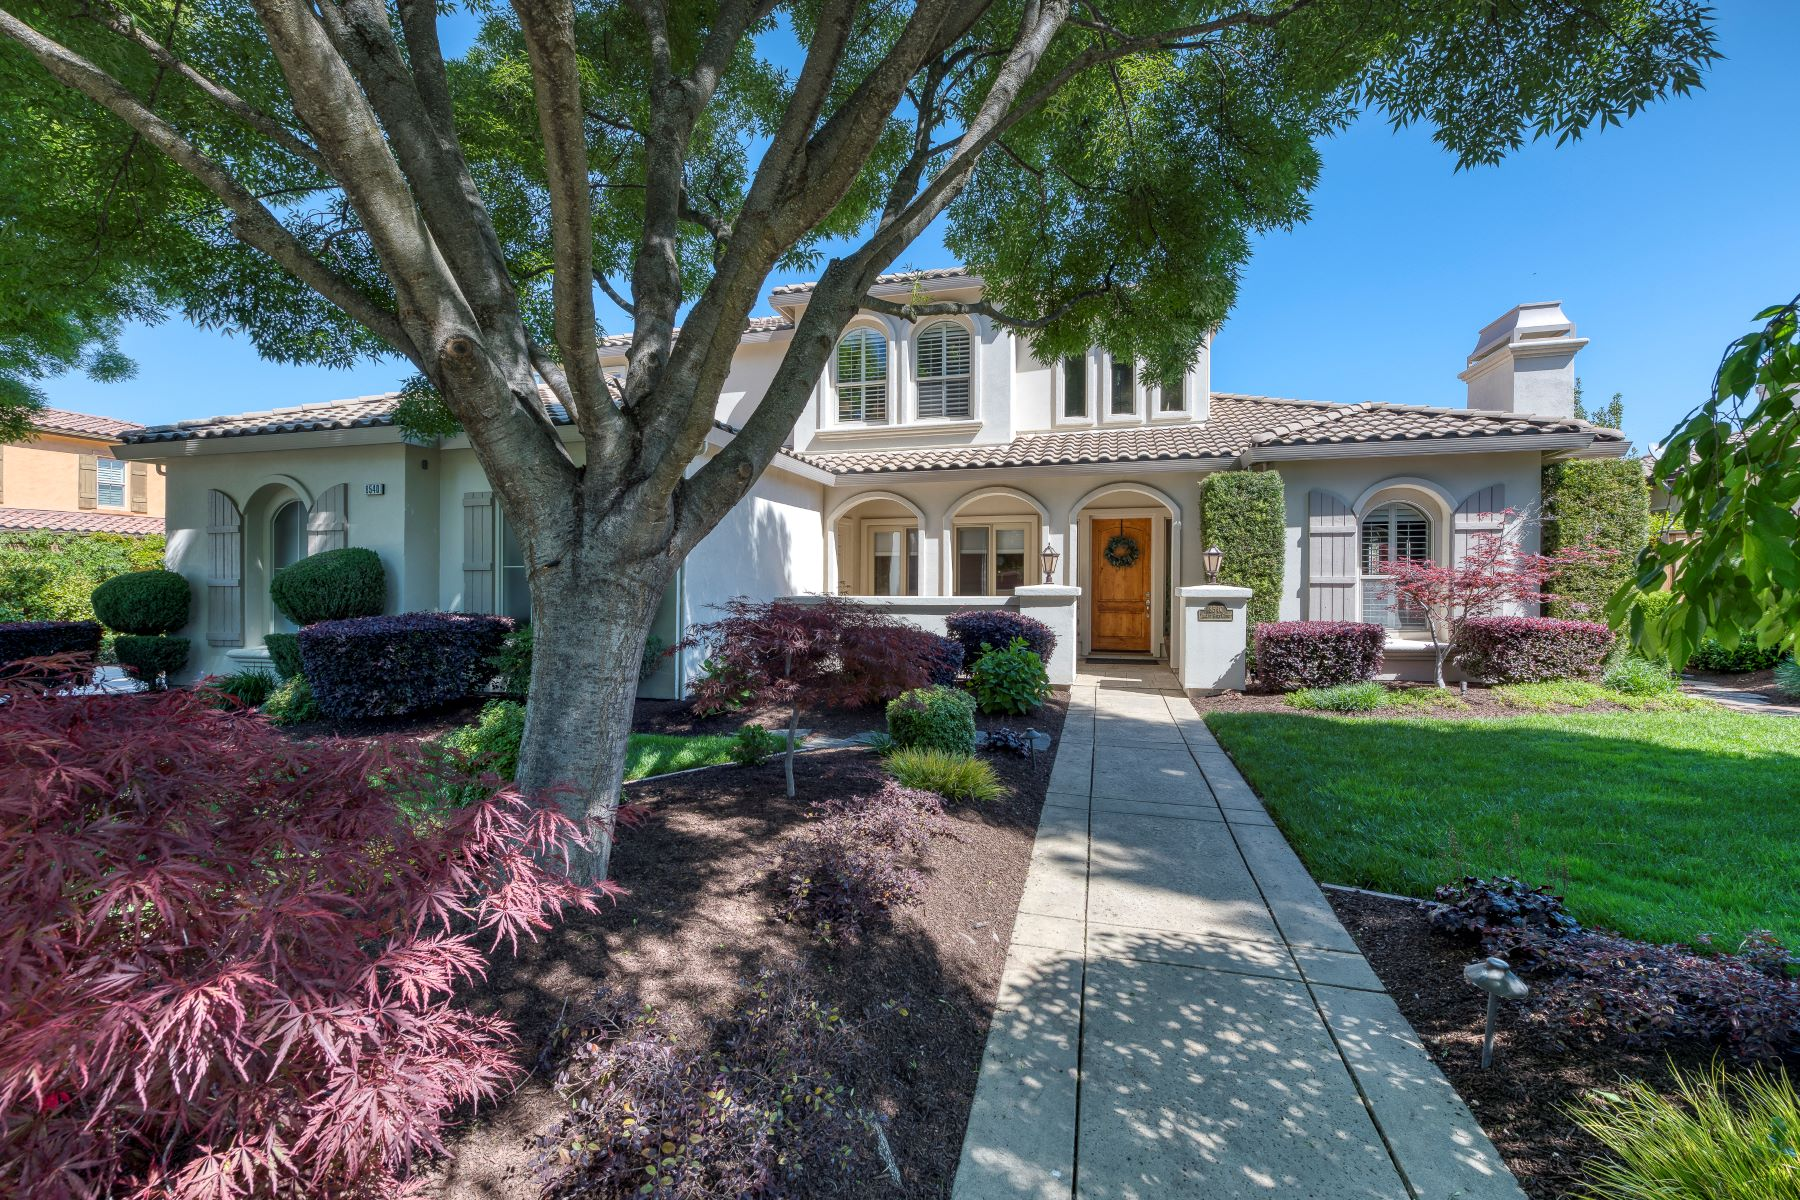 Single Family Home for Active at 8540 Willow Gate Court, Granite Bay, 95746 8540 Willow Gate Court Granite Bay, California 95746 United States